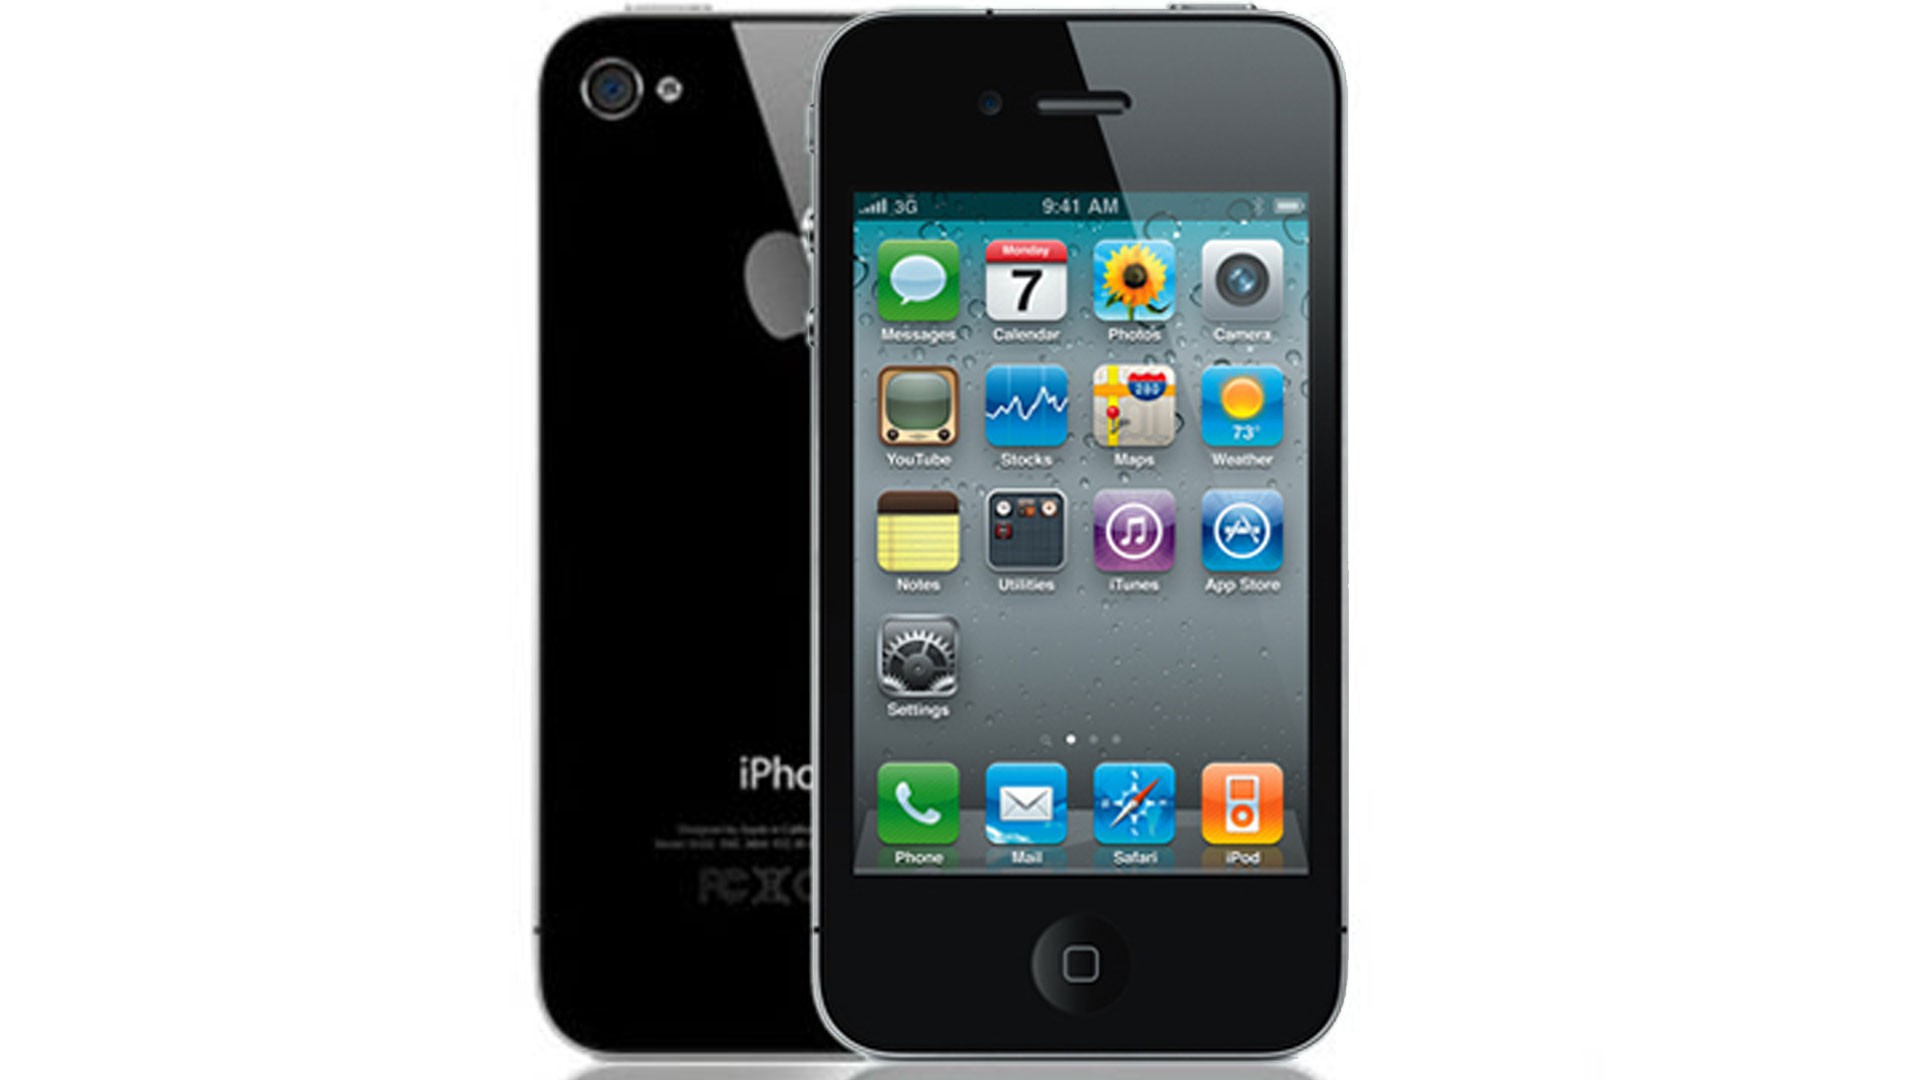 iphone 4s for sale unlocked apple iphone 4s 8gb smartphone unlocked gsm black 17351